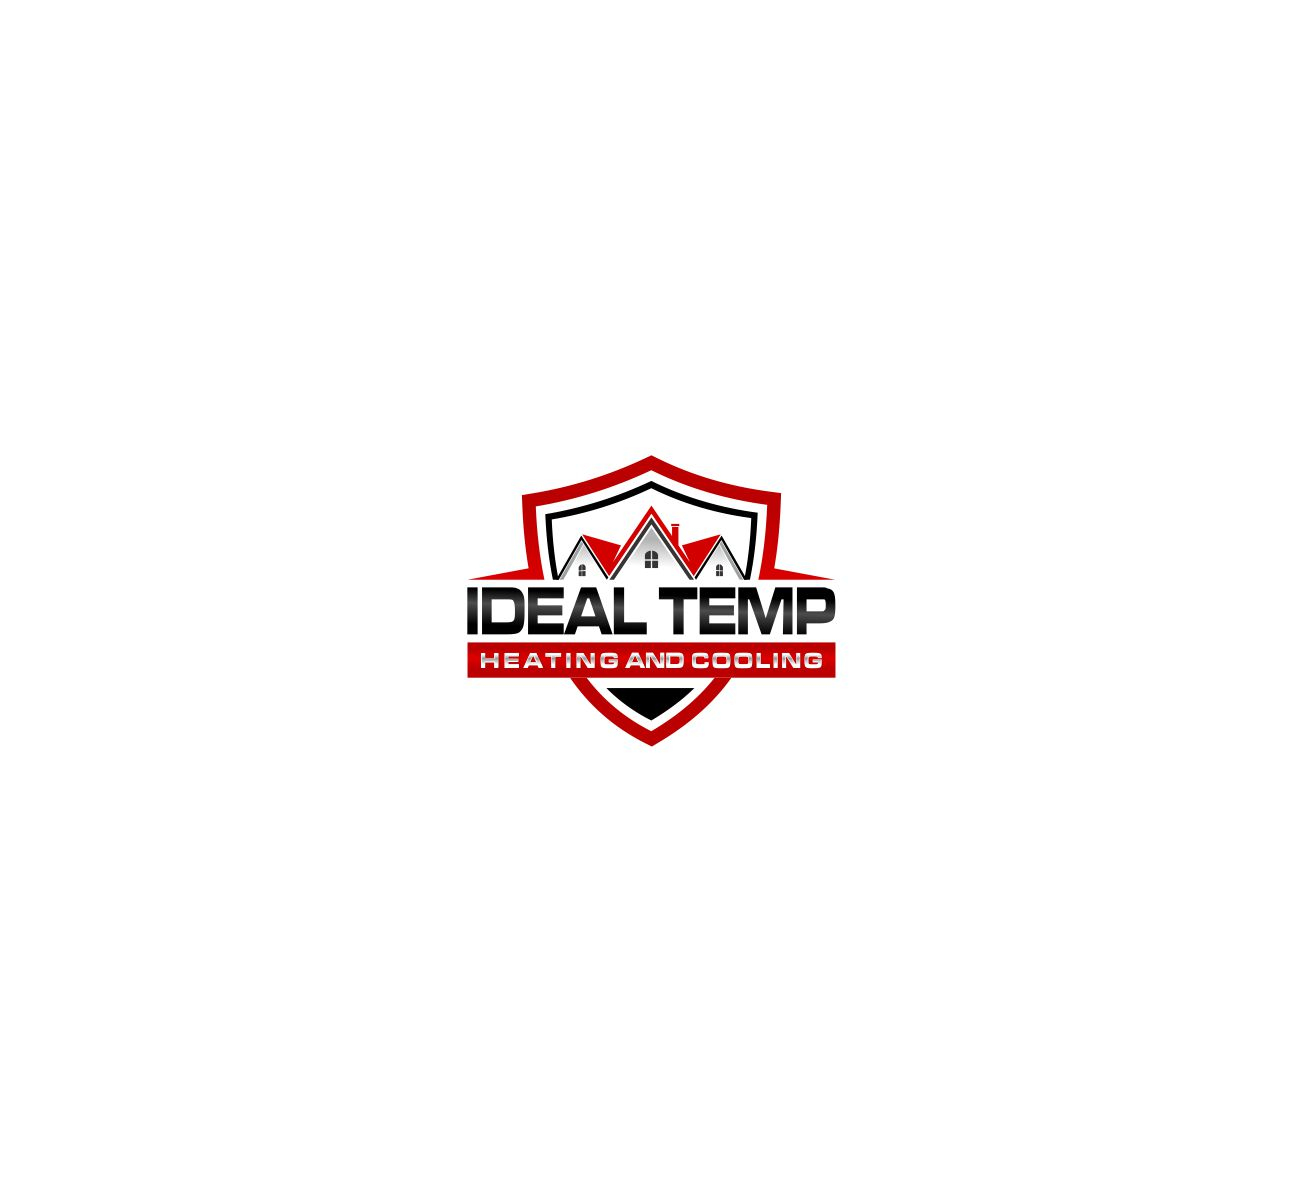 Logo Design by Raymond Garcia - Entry No. 8 in the Logo Design Contest Captivating Logo Design for Ideal Temp.